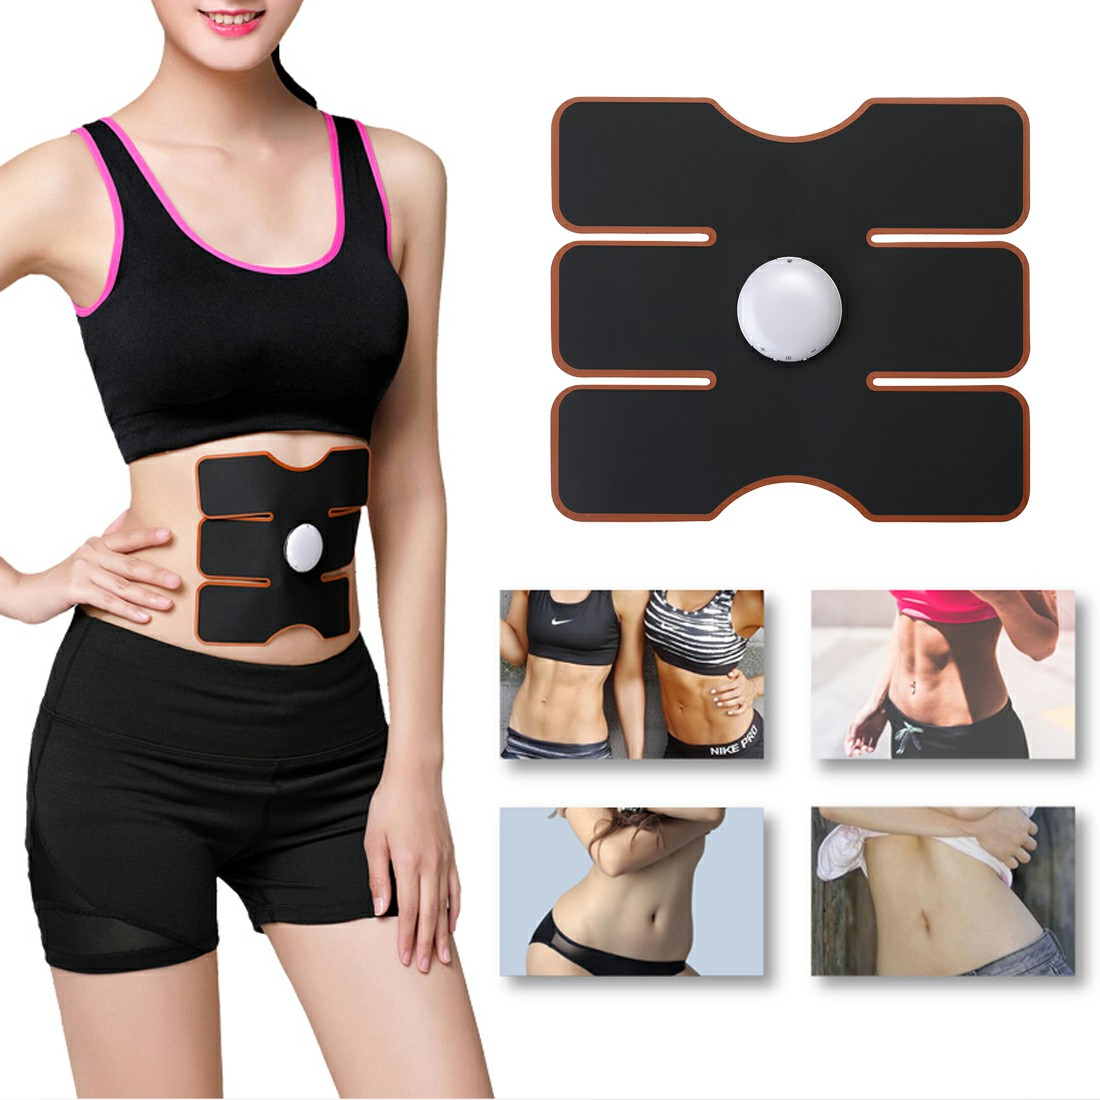 EMS Abdomen Muscle Stimulator Fitness Lifting Trainer Body Slimming Massage